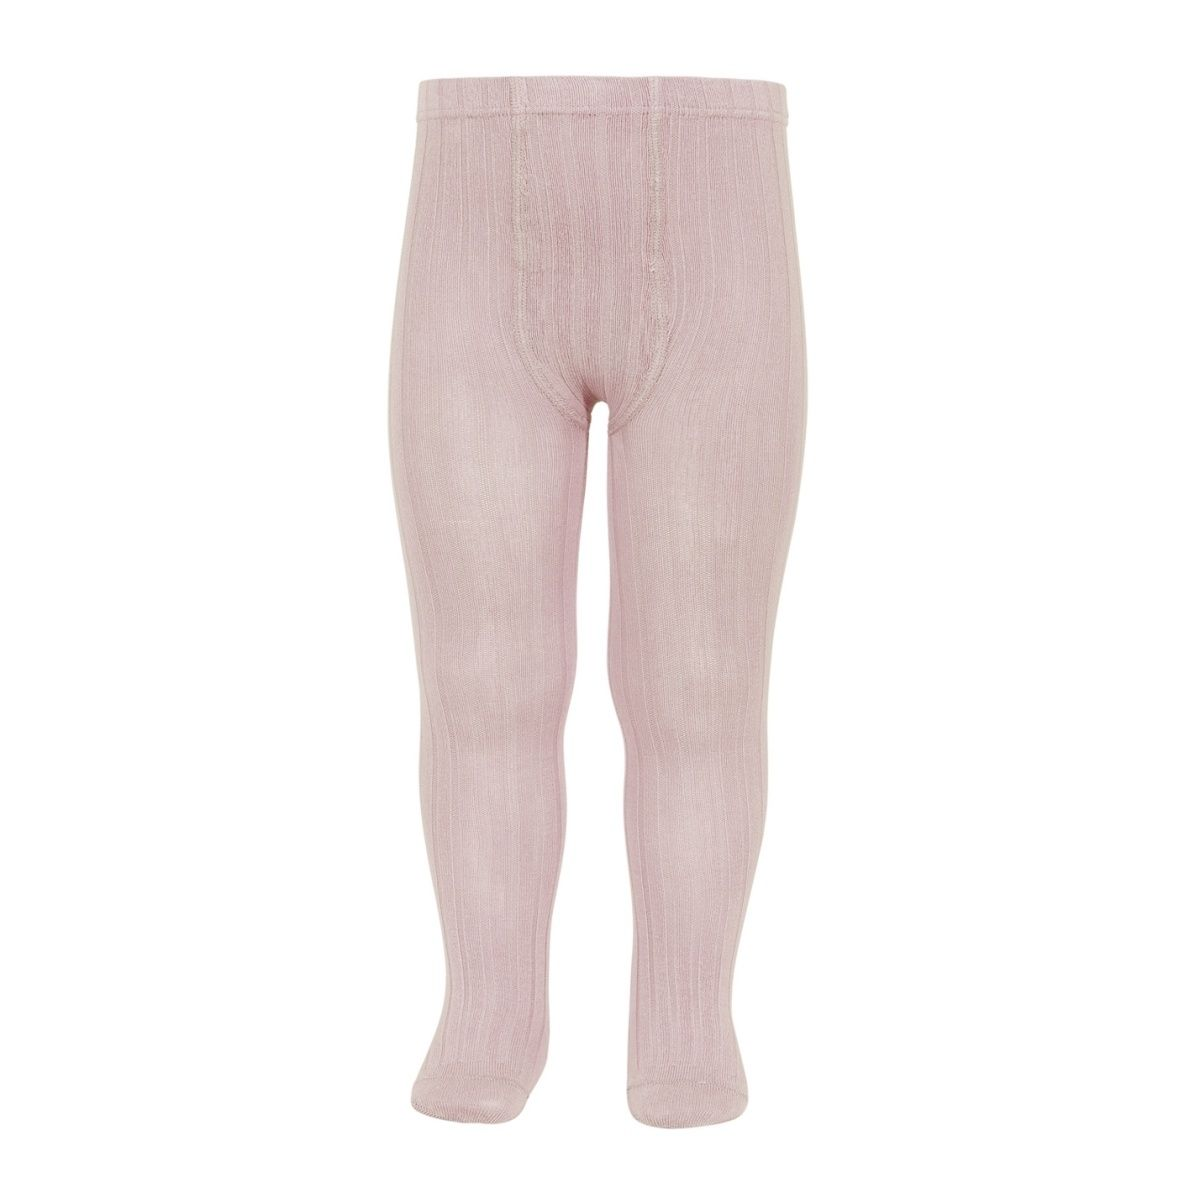 Condor Wide Ribbed Cotton Tights old rose